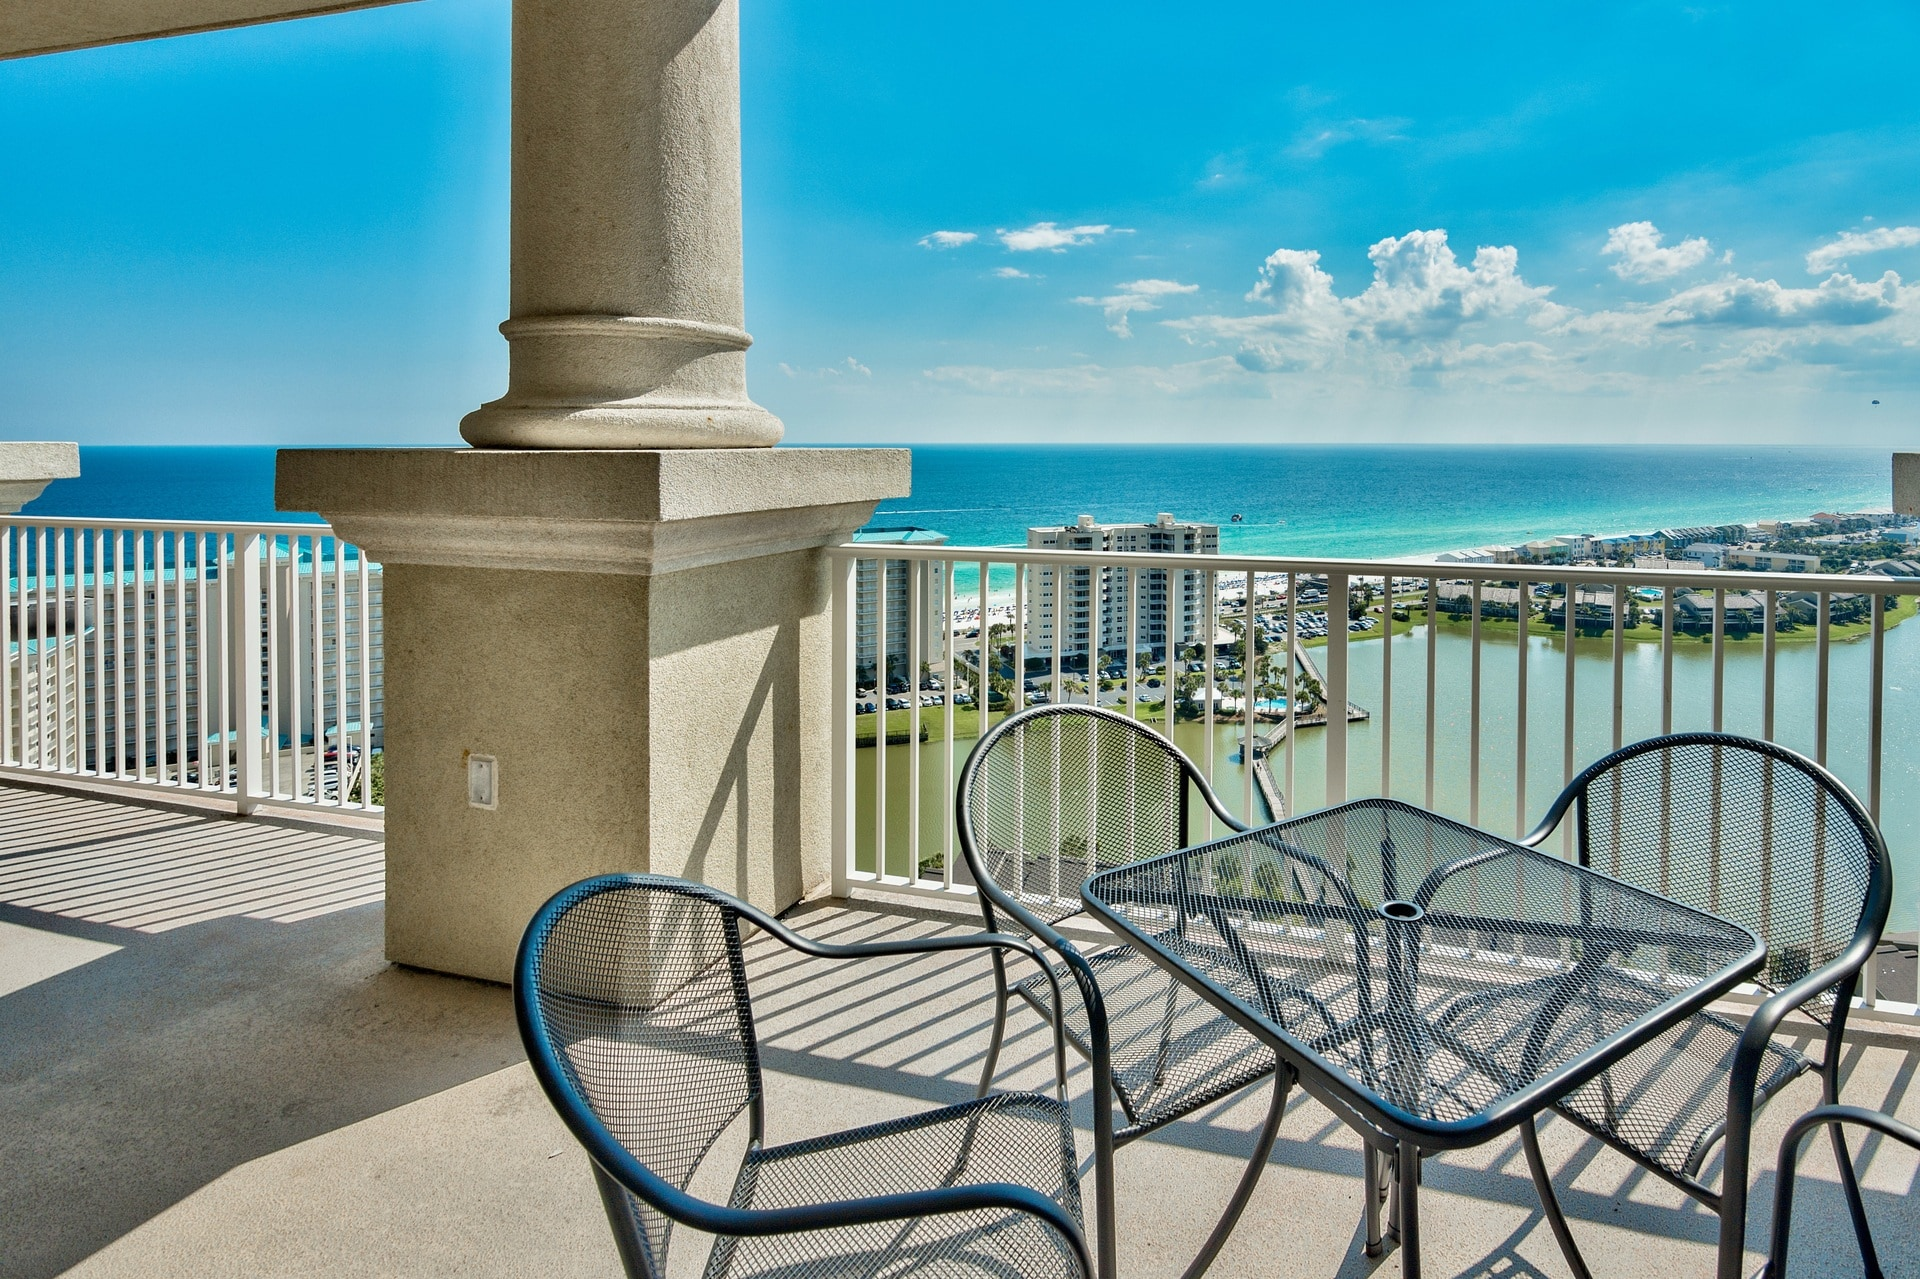 Welcome to Miramar Beach! This beachfront condo is professionally managed by TurnKey Vacation Rentals.